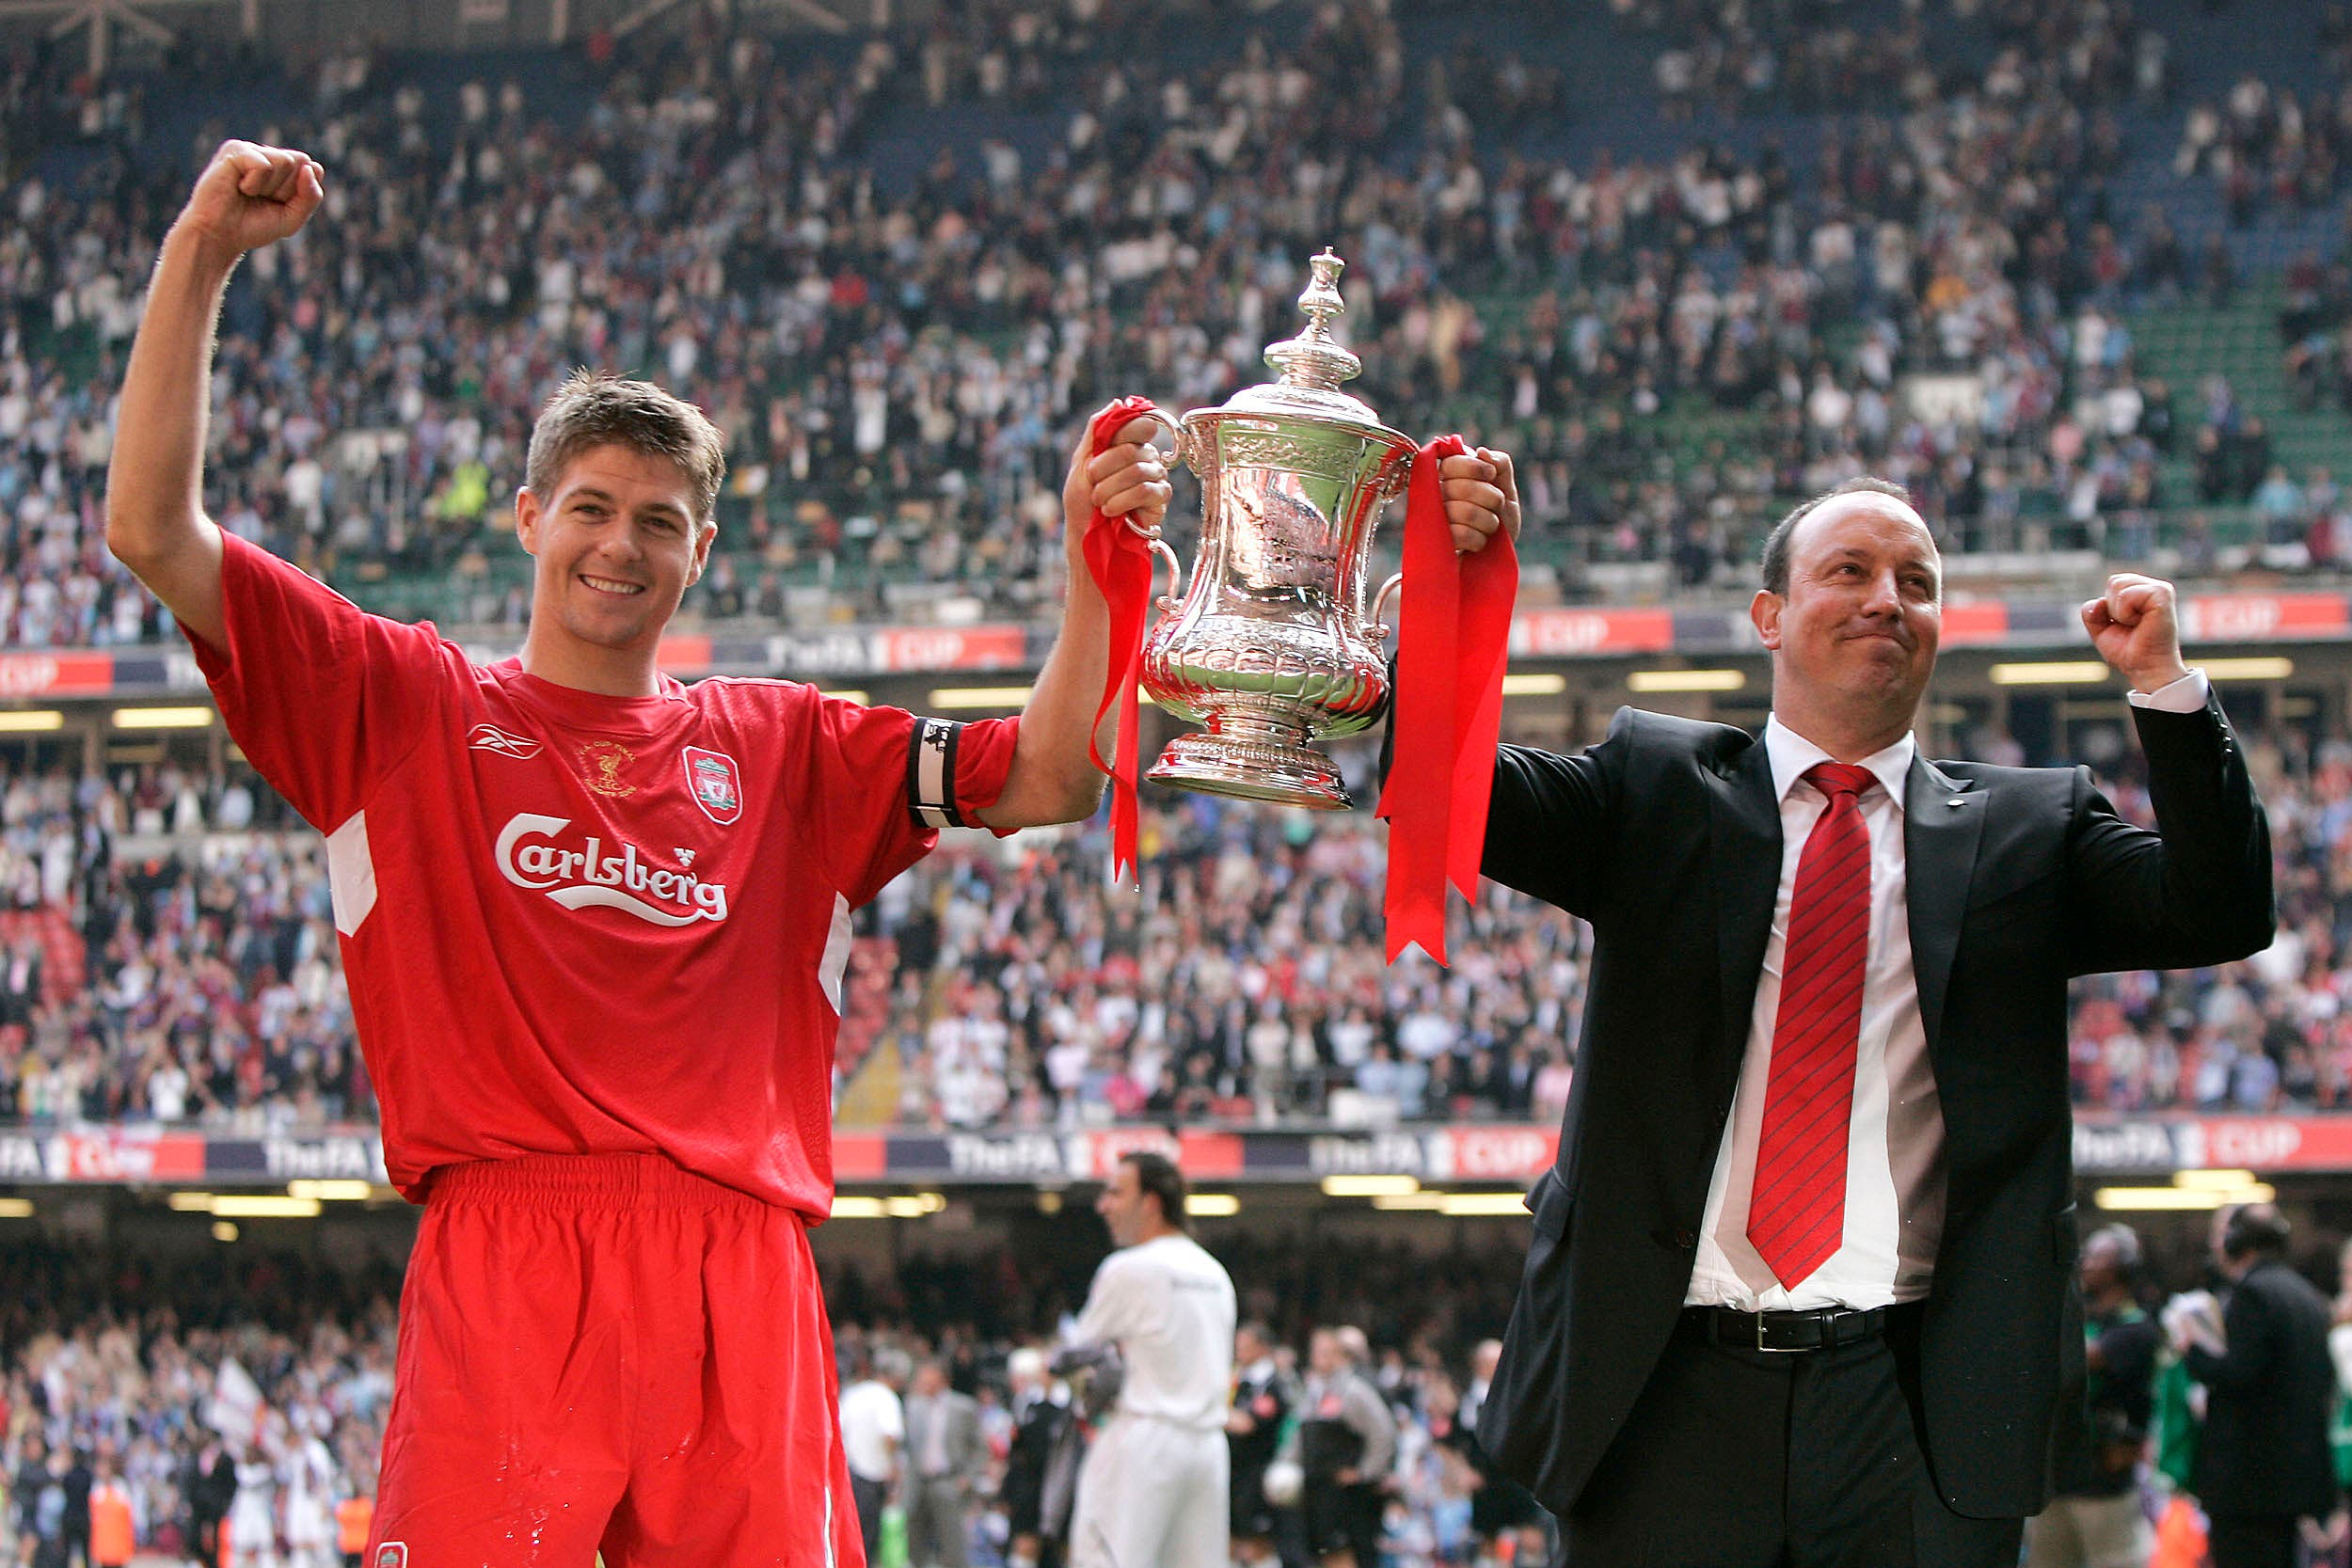 Liverpool's Steven Gerrard, left, and manager Rafael Benitez celebrate their win against West Ham United in the FA Cup Final soccer match with the trophy at the Millennium Stadium in Cardiff, Wales, Saturday, May 13, 2006. Liverpool won 3-1 on penalties after the match ended 3-3 after extra time. (AP)